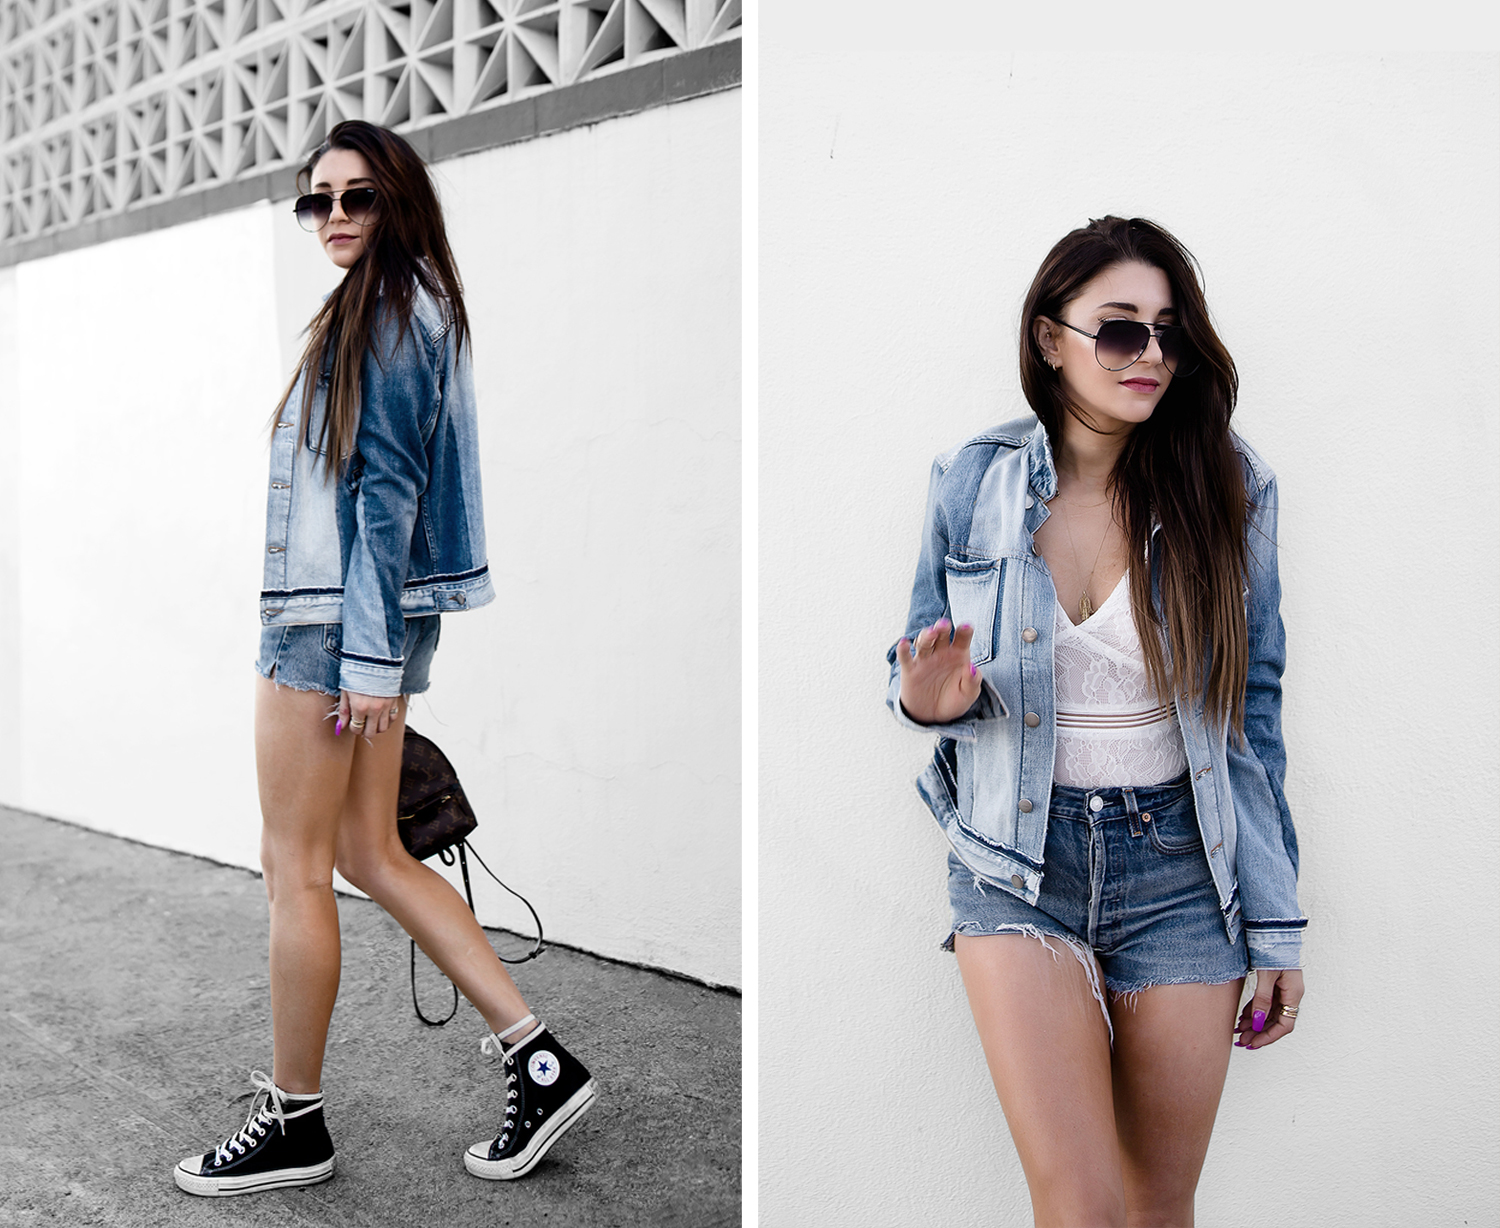 fashionlush, Denim Brands You Need to Know About, How to Online Shop for Denim